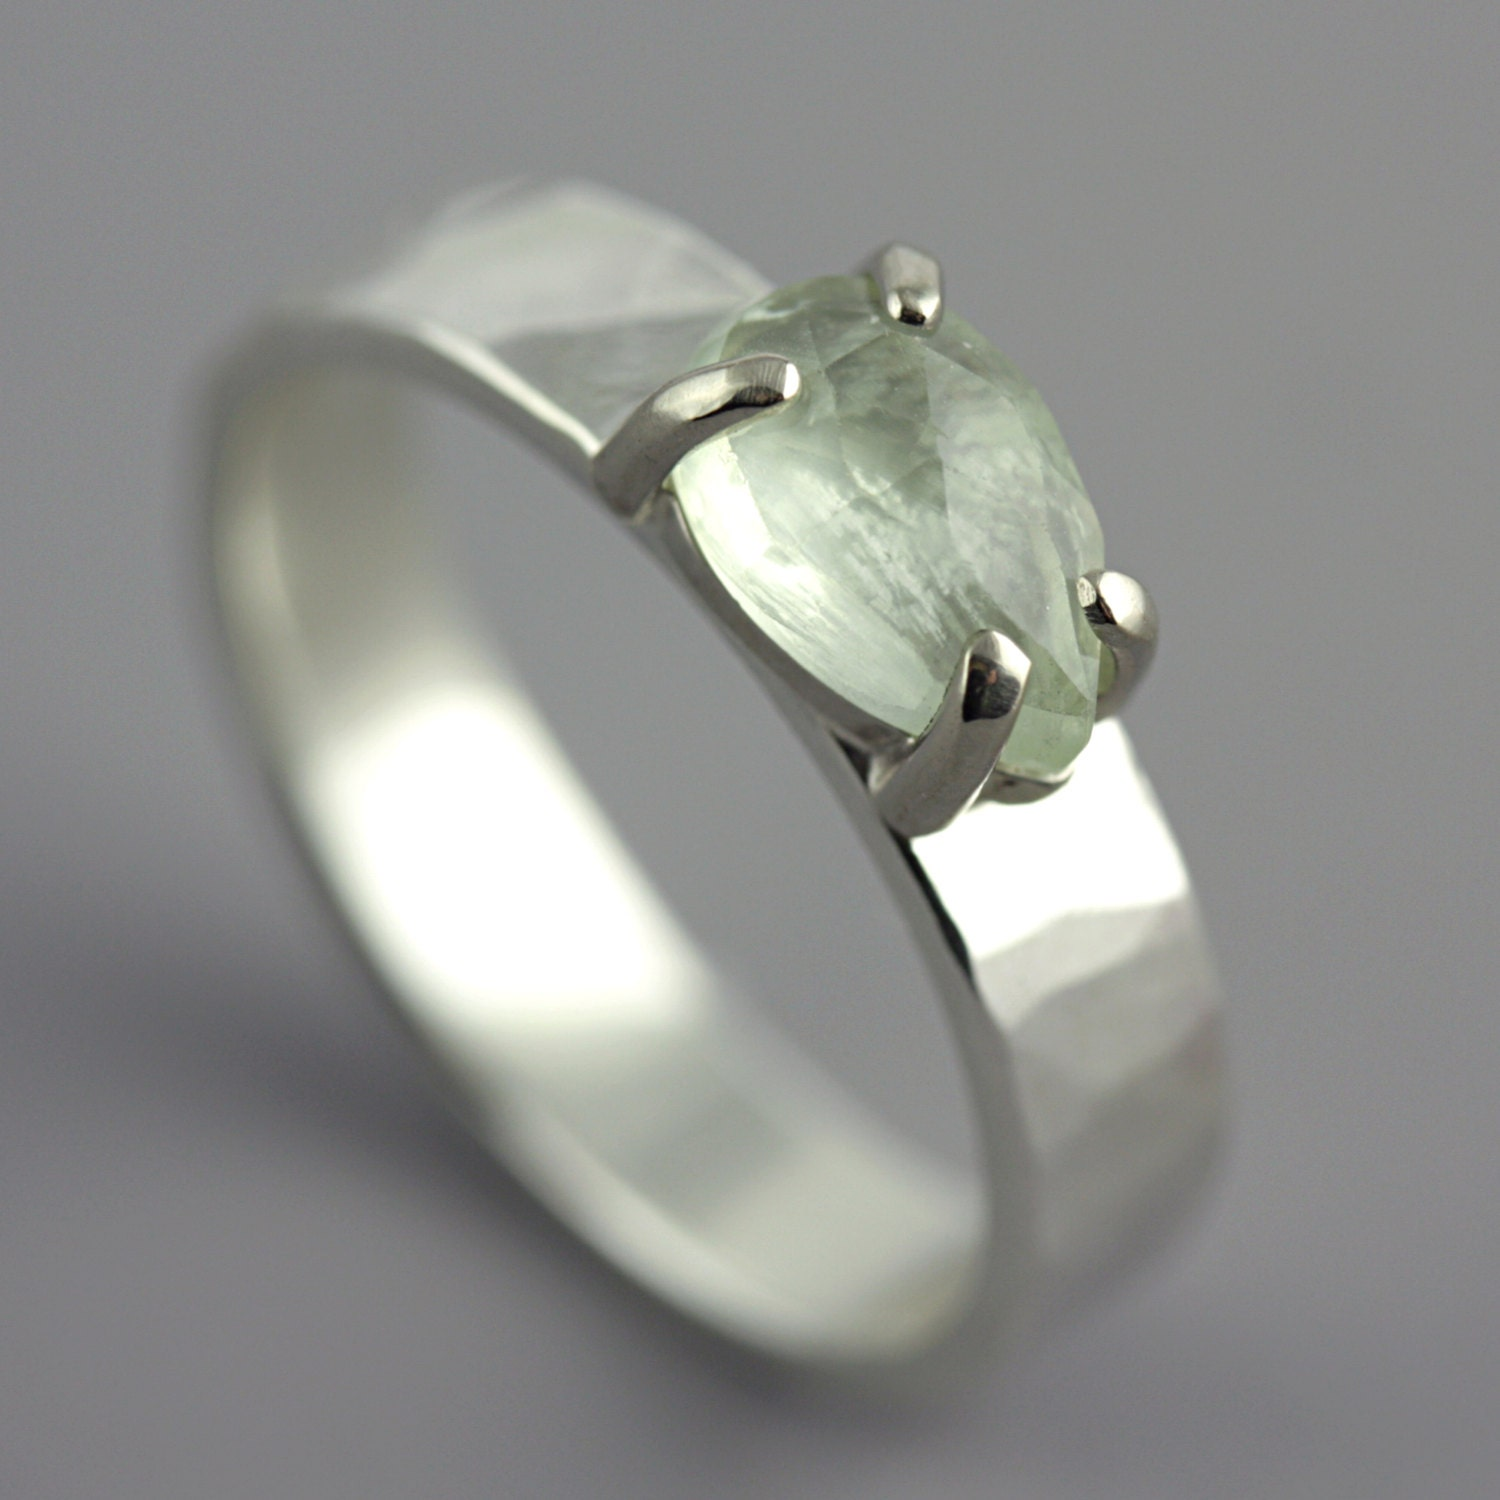 Hammered 14k White Gold Ring with Faceted Pear Shaped Prehnite